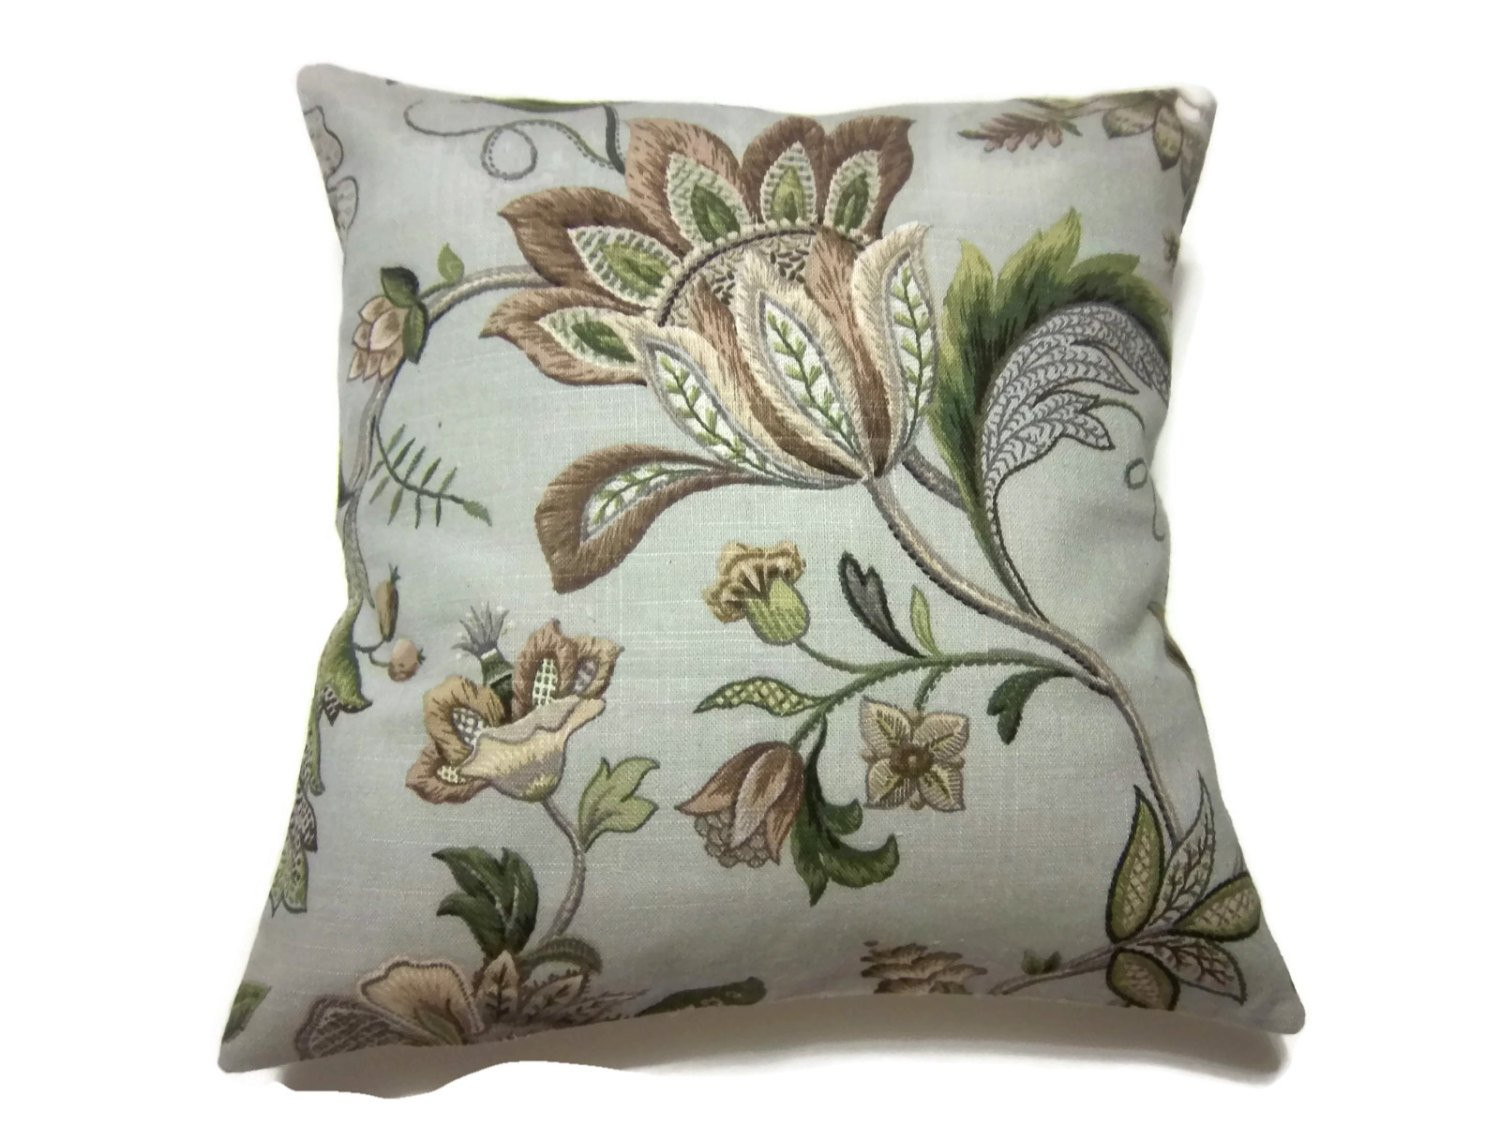 Inspirational Decorative Pillow Cover Gray Taupe Olive Green Brown Patterned Throw Of Amazing 40 Photos Patterned Throw